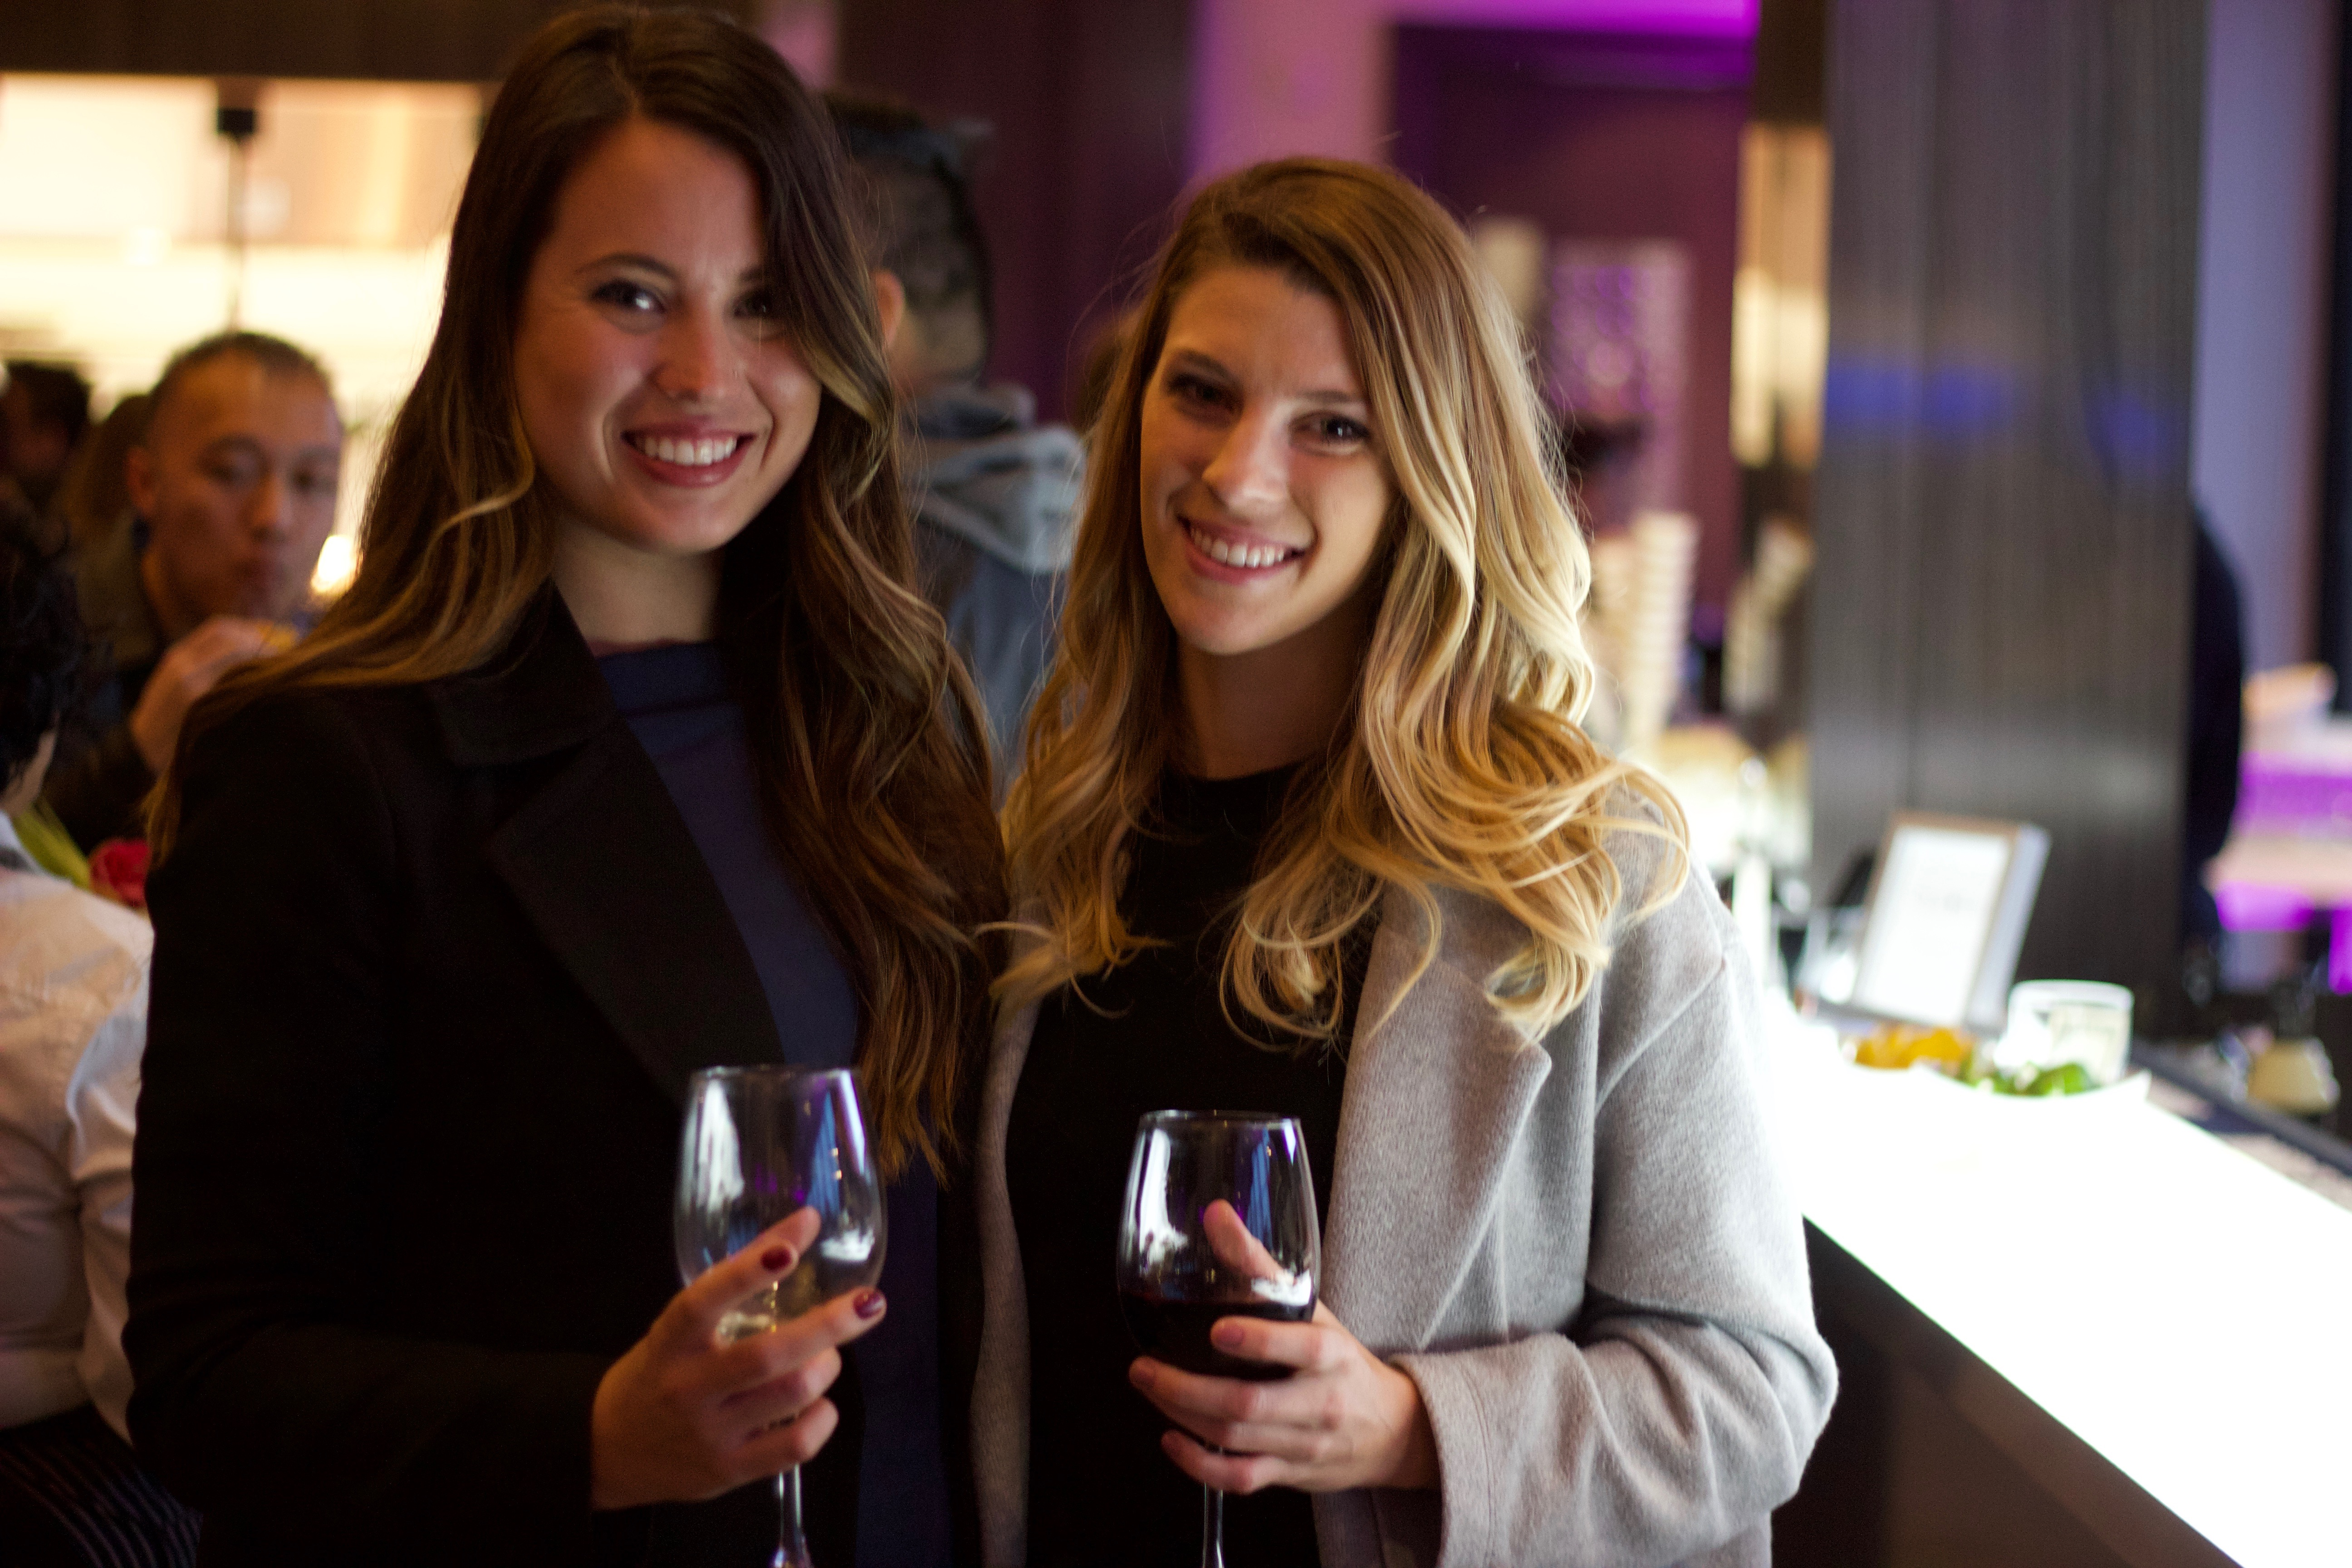 Le Chateau Parc - Vineyard Restaurant - Vaughan, Ontario - Food Blogger Event